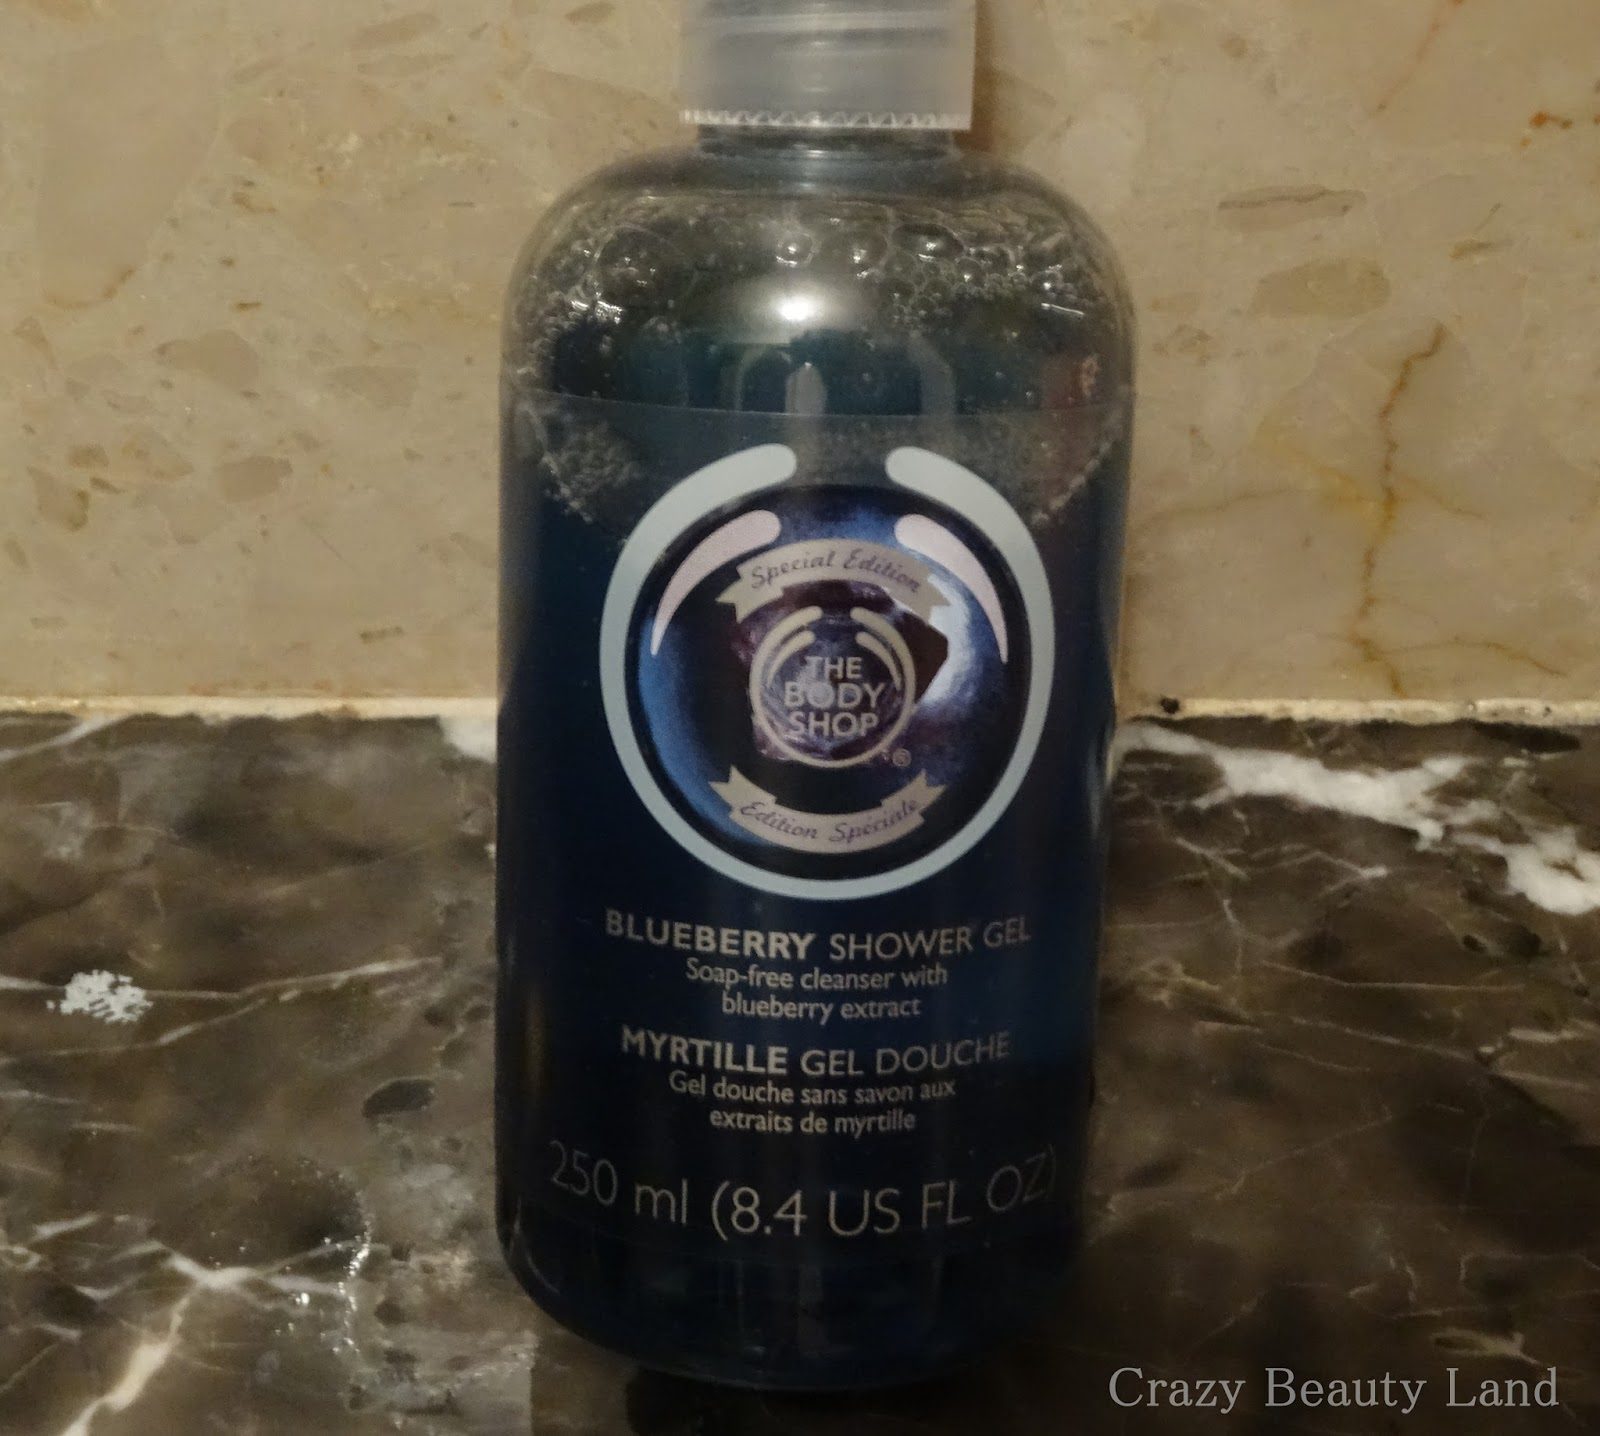 The Body Shop Blueberry Shower Gel Review in India